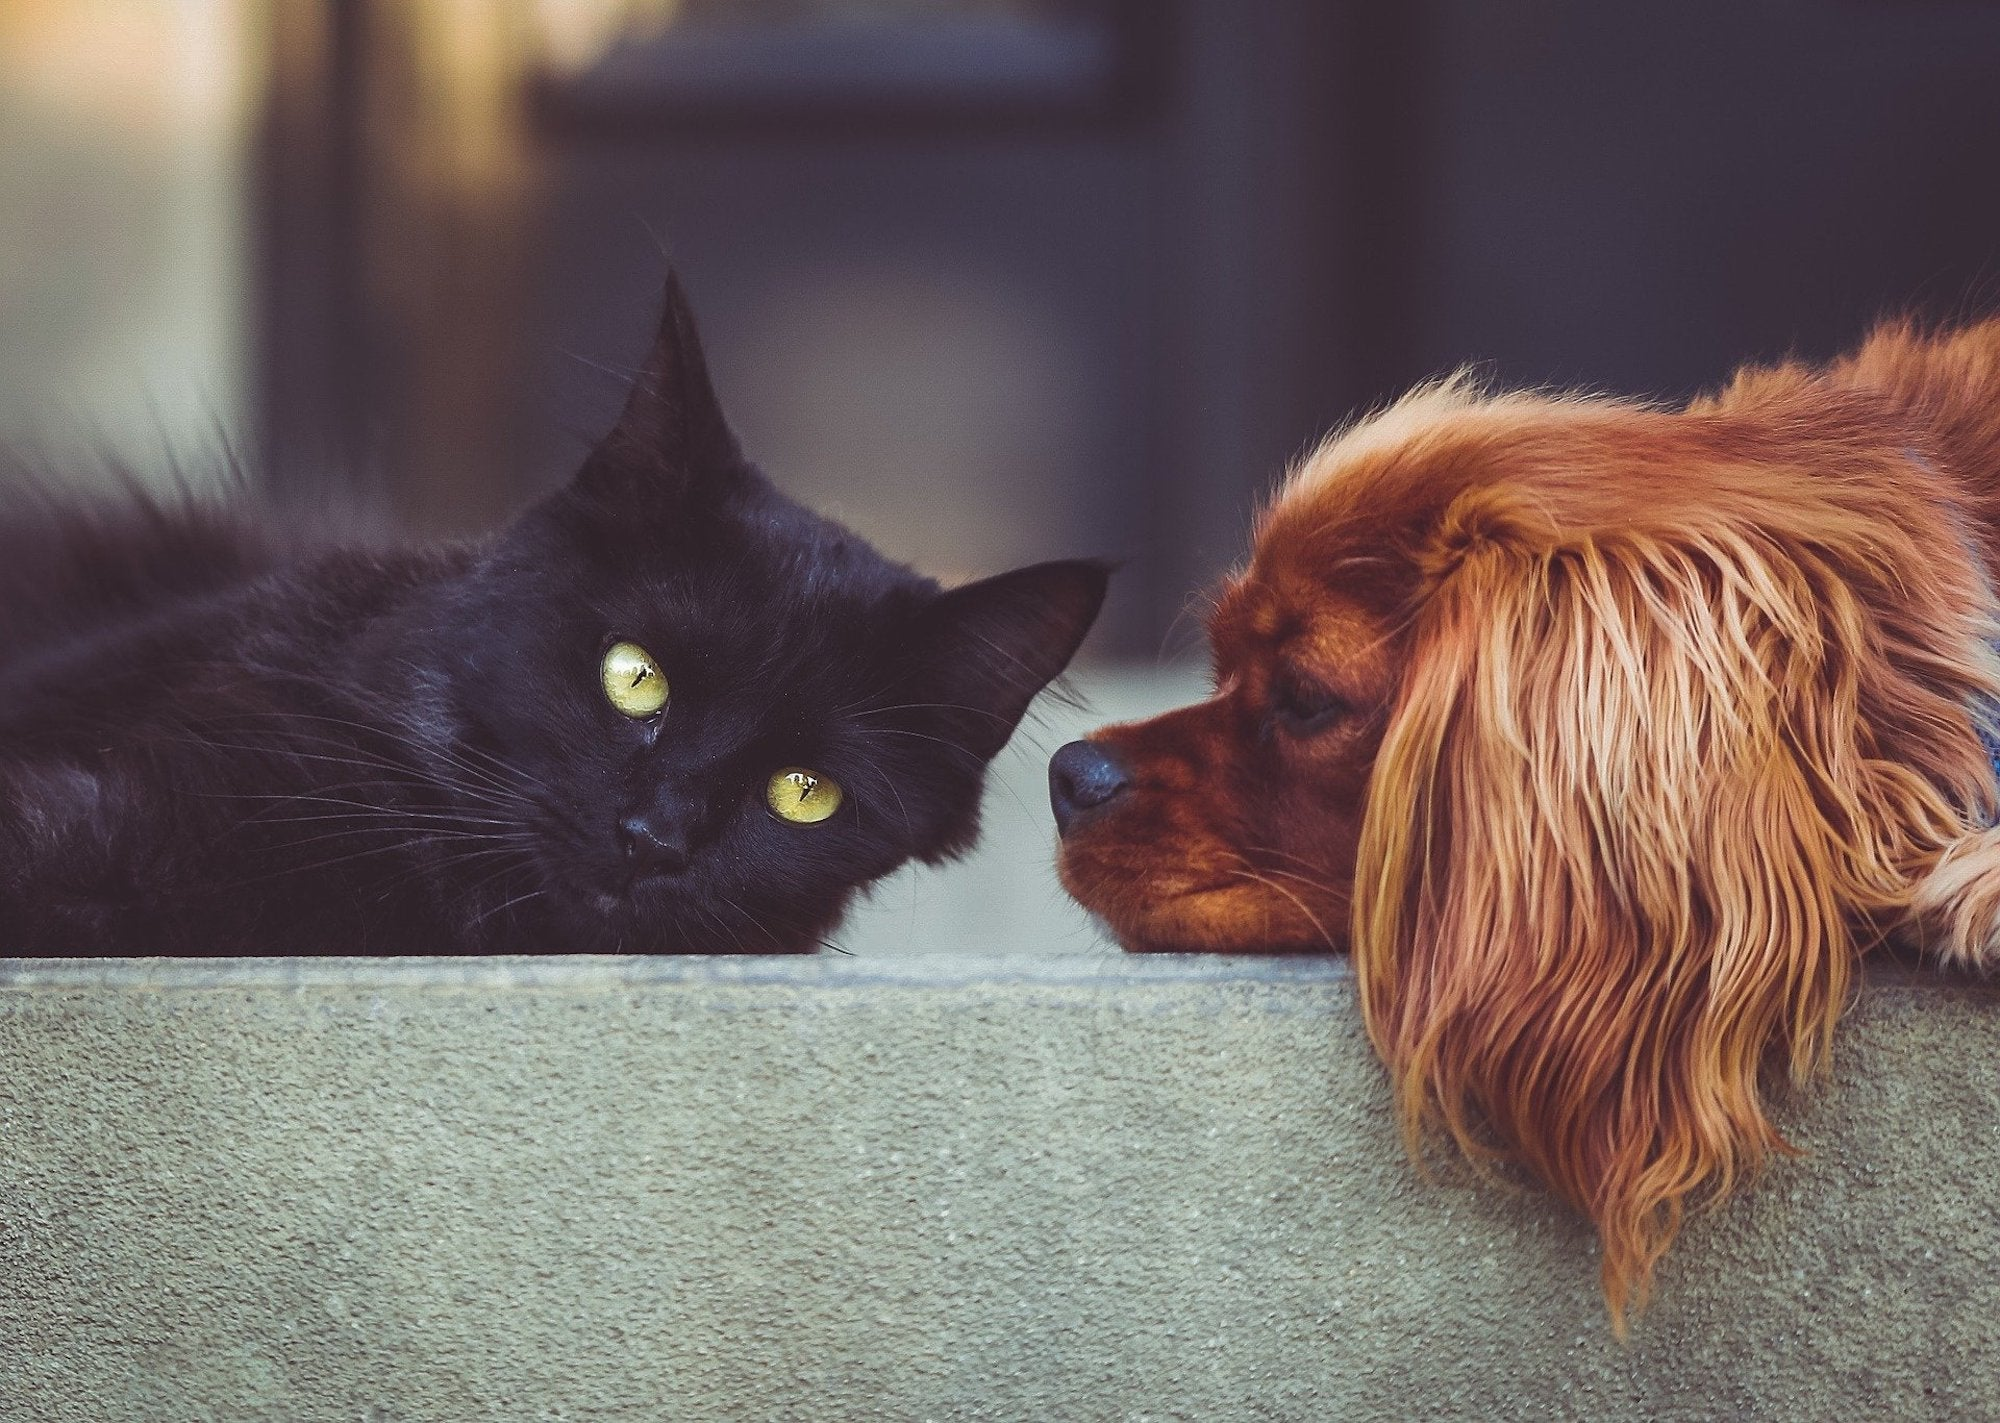 King Charles cavalier puppy with a black cat